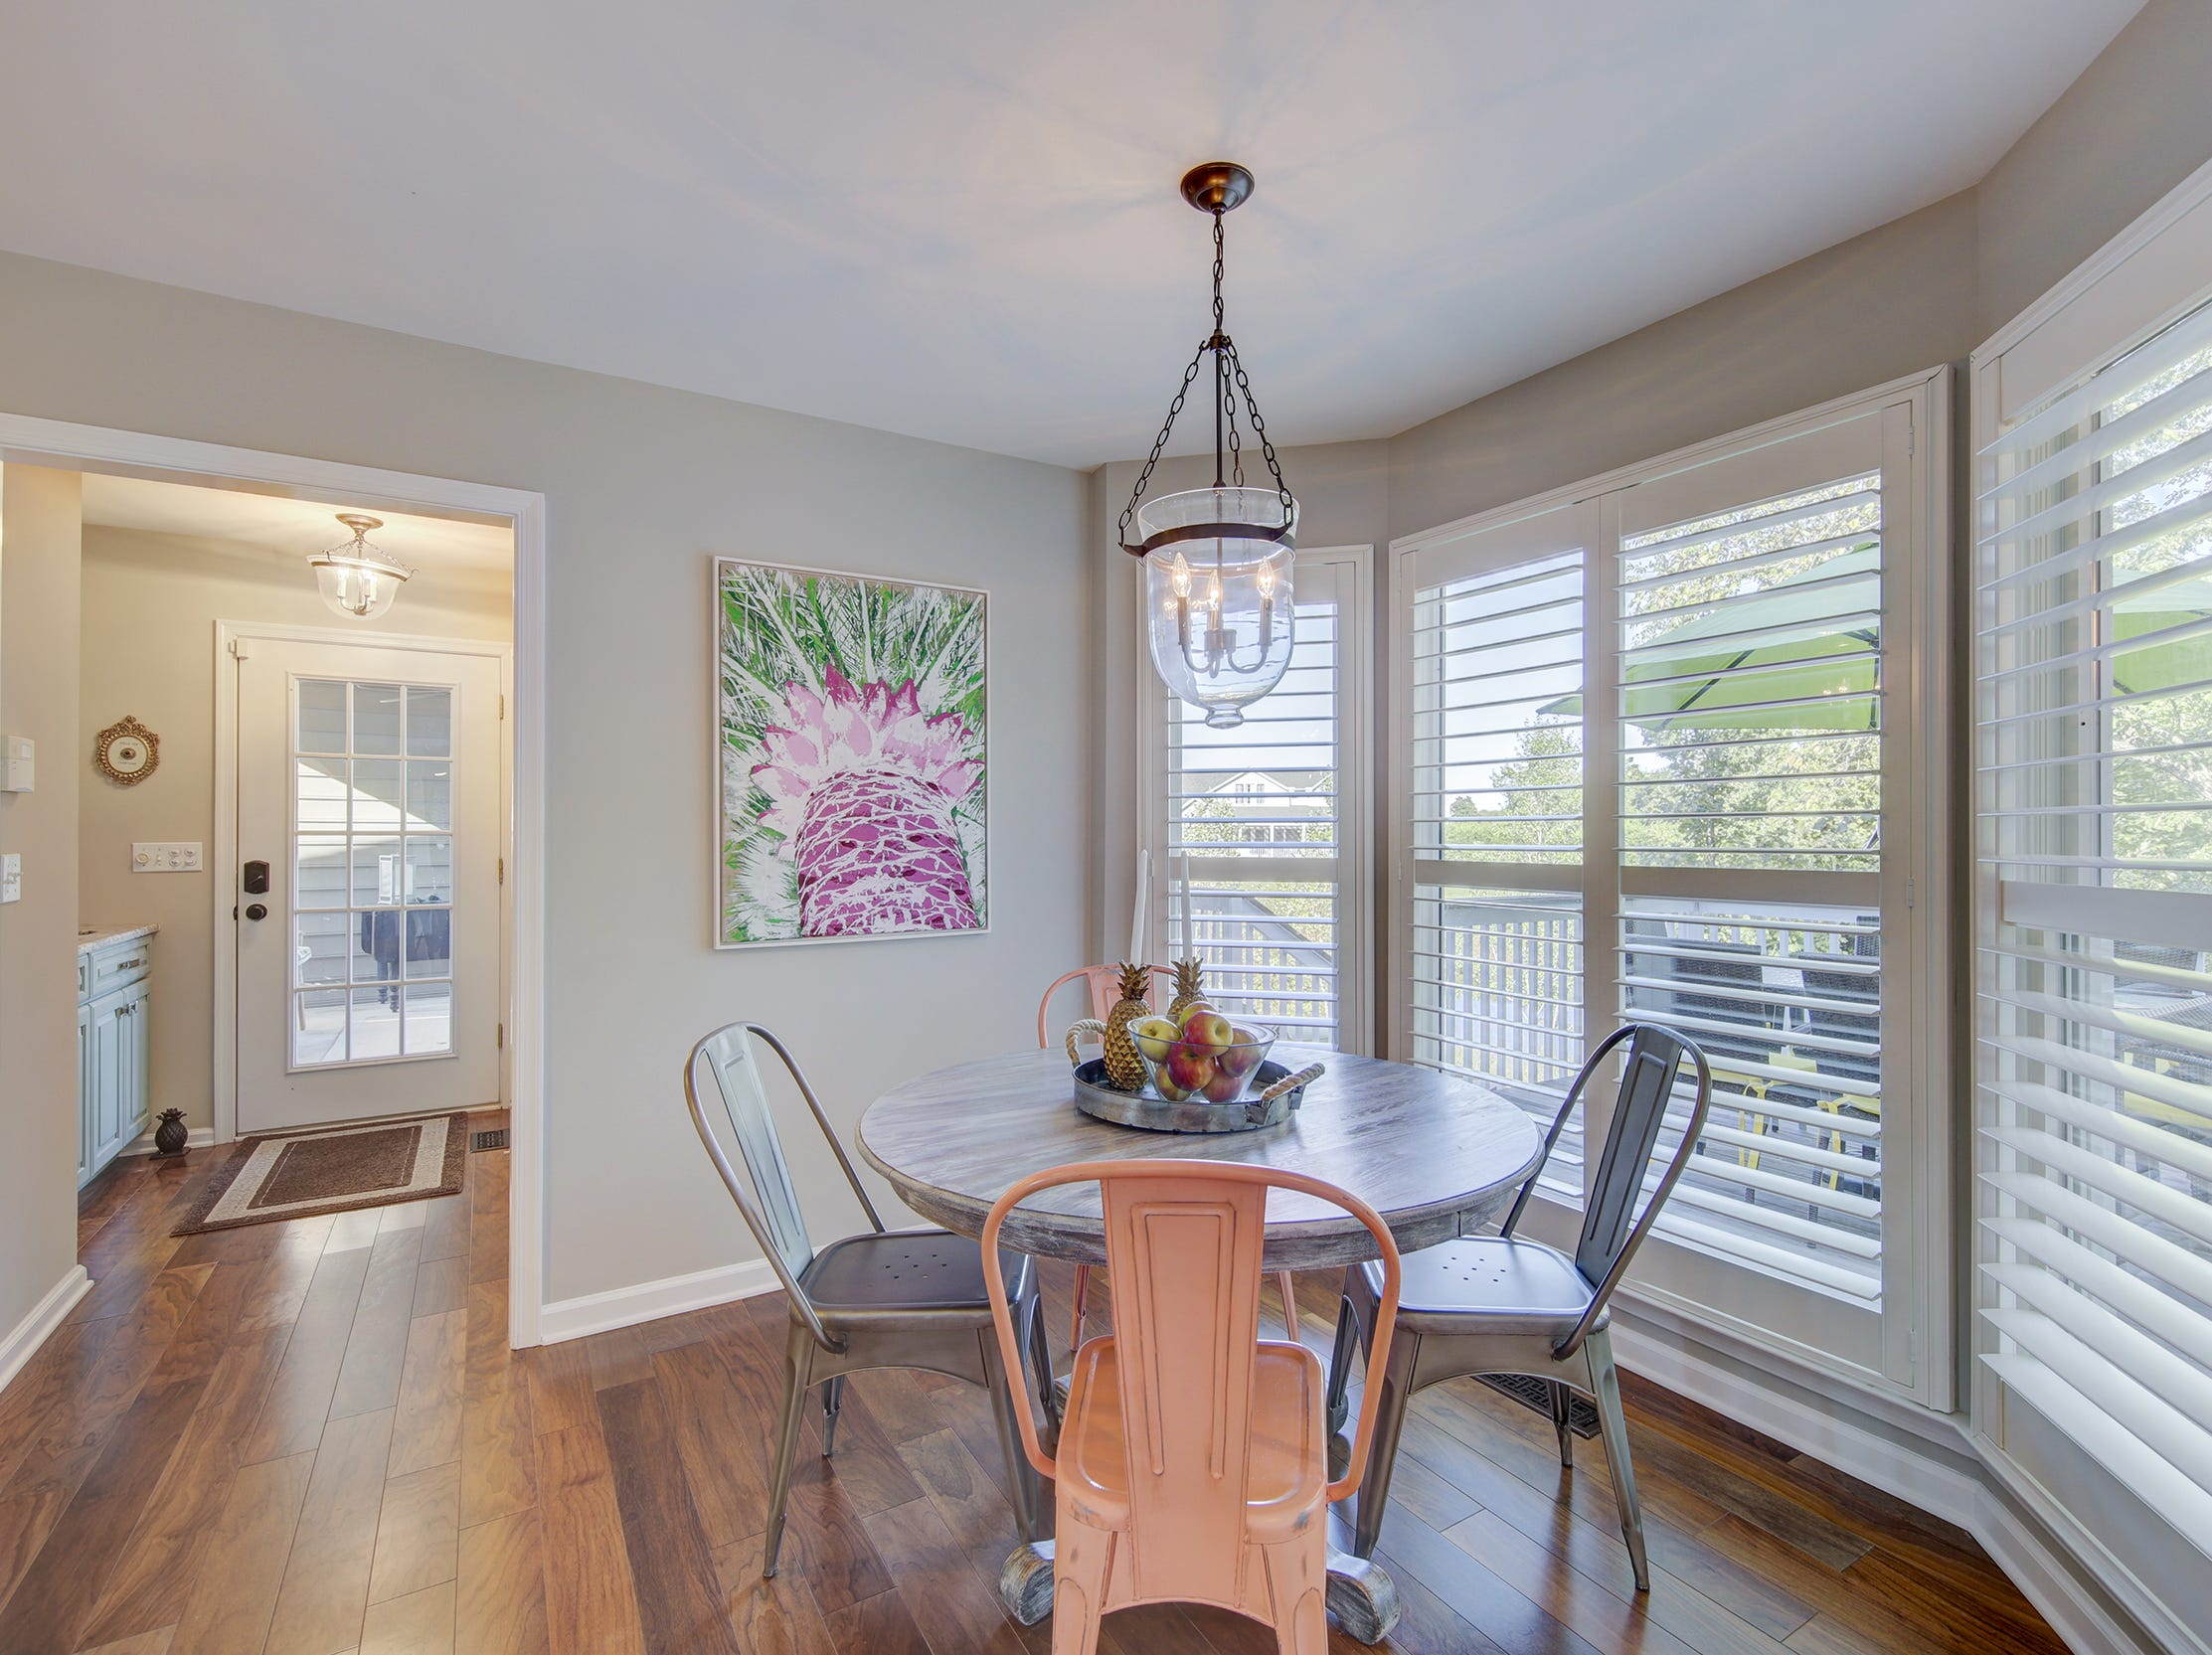 There's a breakfast nook off the kitchen at 204 Lakeview Shores for informal dining.